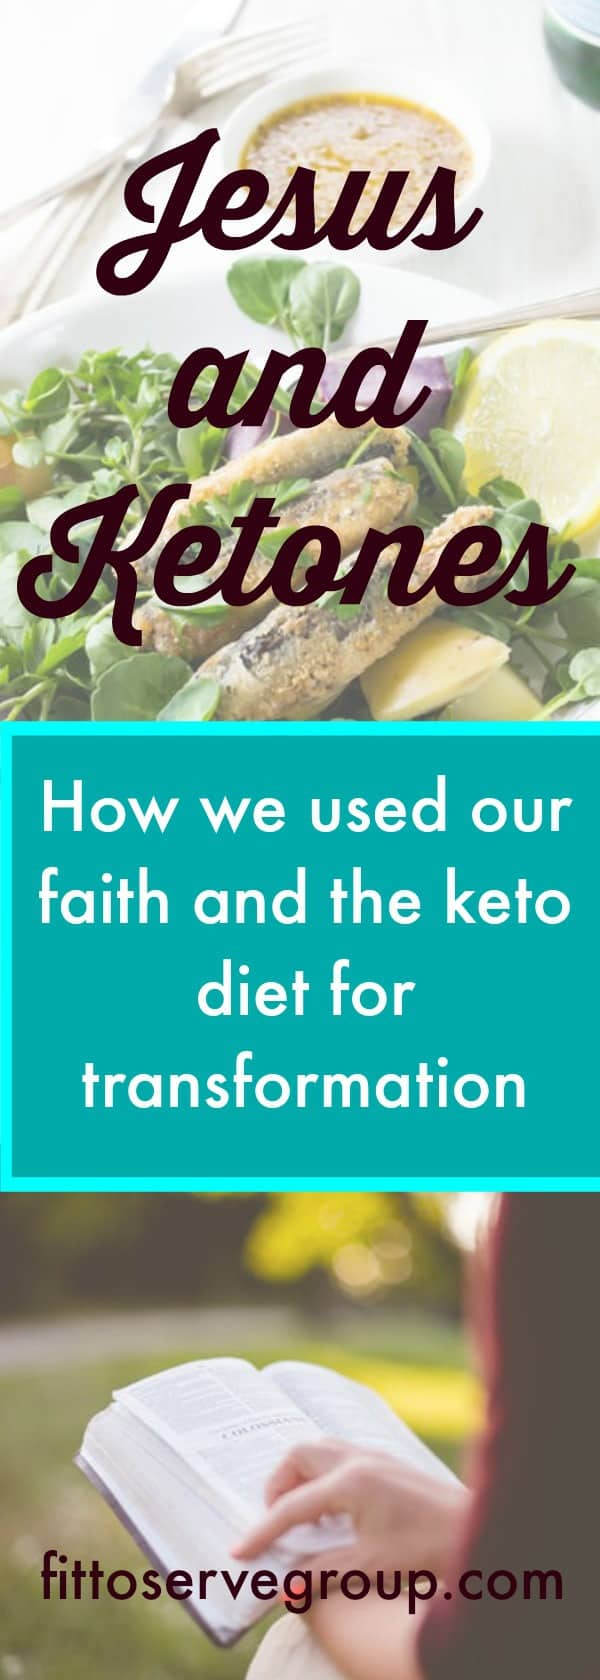 How we combined our christian faith with the keto diet for transformation.